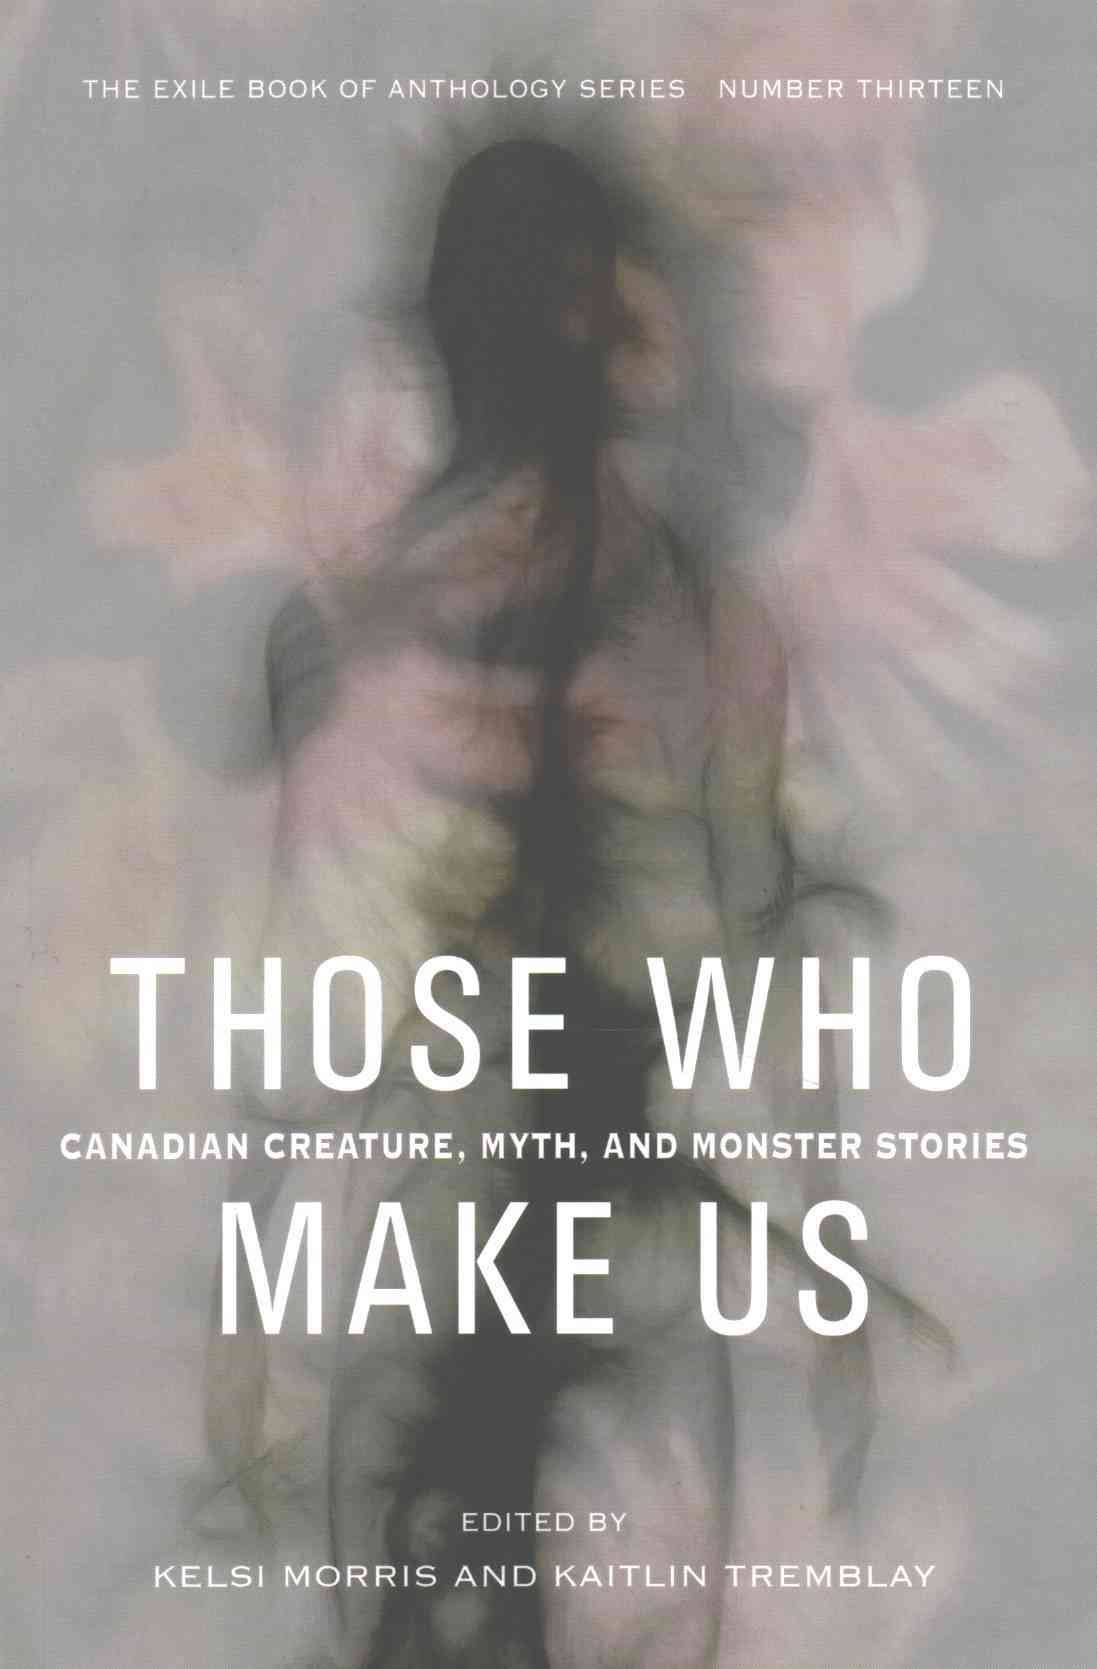 TAKE TAKE TAKE - A short story about hybridity and community, published in Those Who Make Us: Canadian Creature, Myth, and Monster Stories (Exile, 2016), edited by Kelsi Morris and Kaitlin Tremblay.Republished in Exile Literary Quarterly, Volume 40, no. 3.